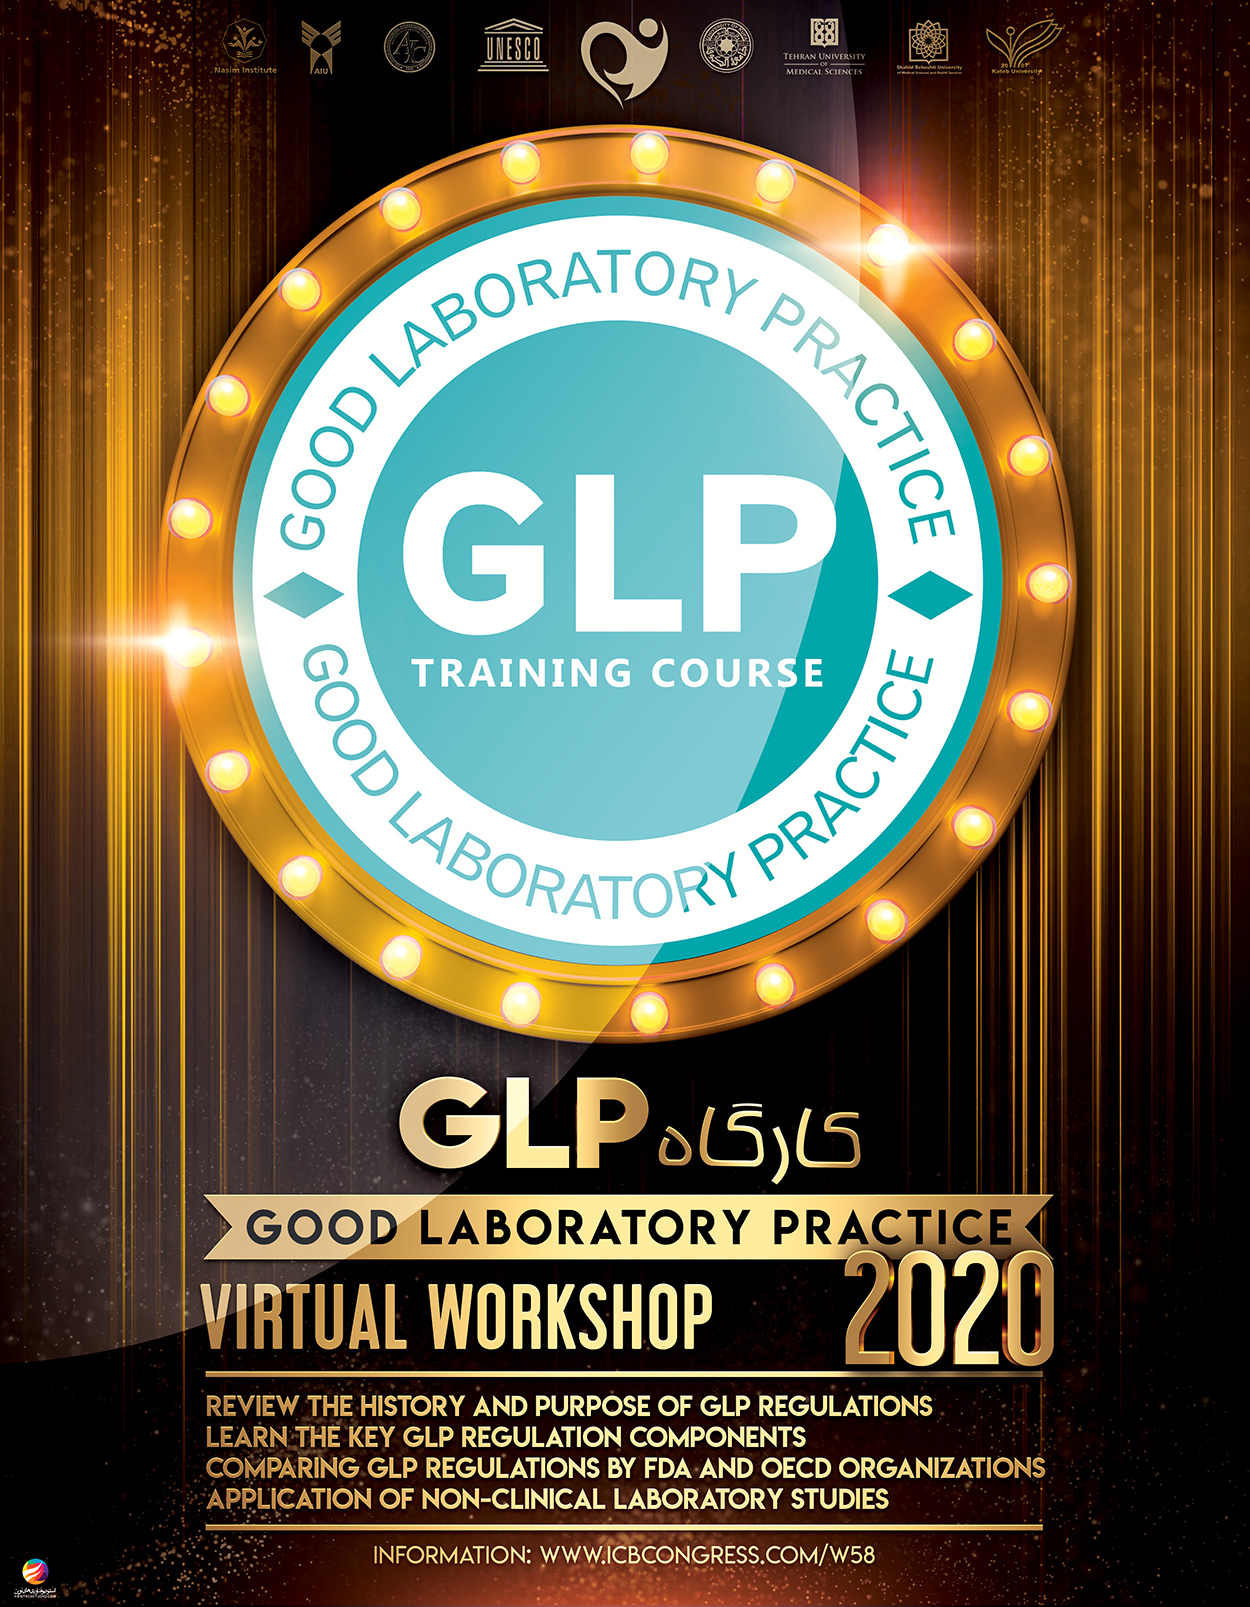 Good Laboratory Practice (GLP) Workshop